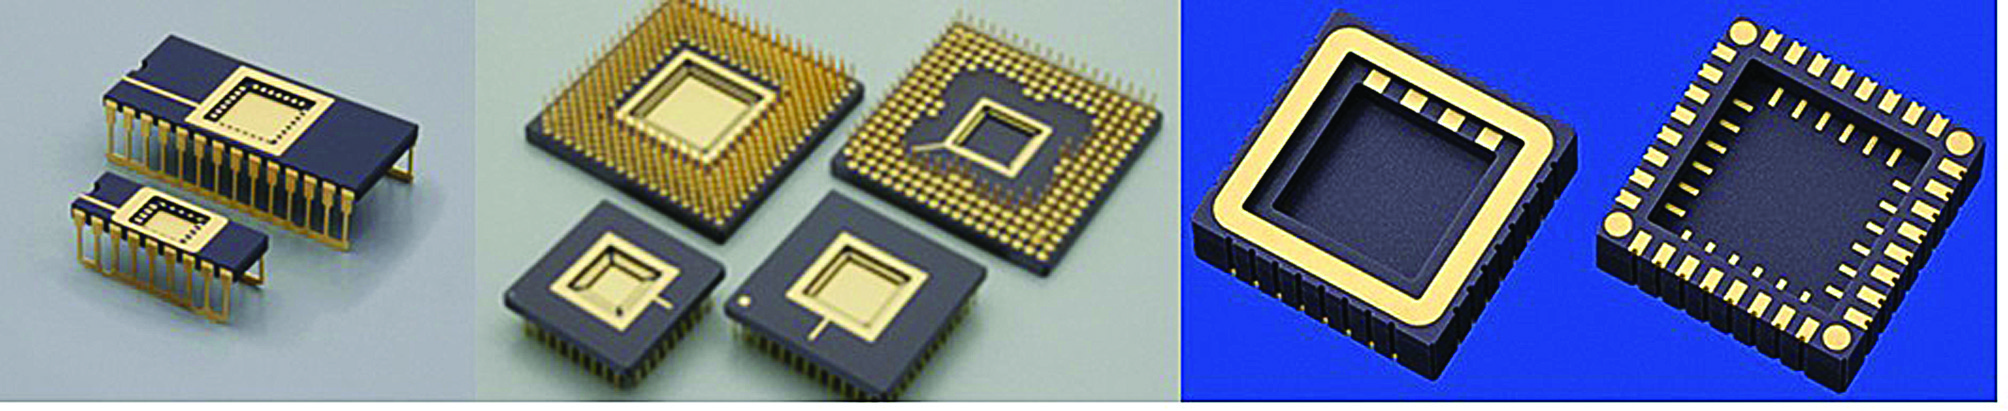 Керамические корпуса CDIP (Ceramic Dual Inline Packages), CPGA (Ceramic Pin Grid Array) и C-SMD (Ceramic Surface Mount Device)